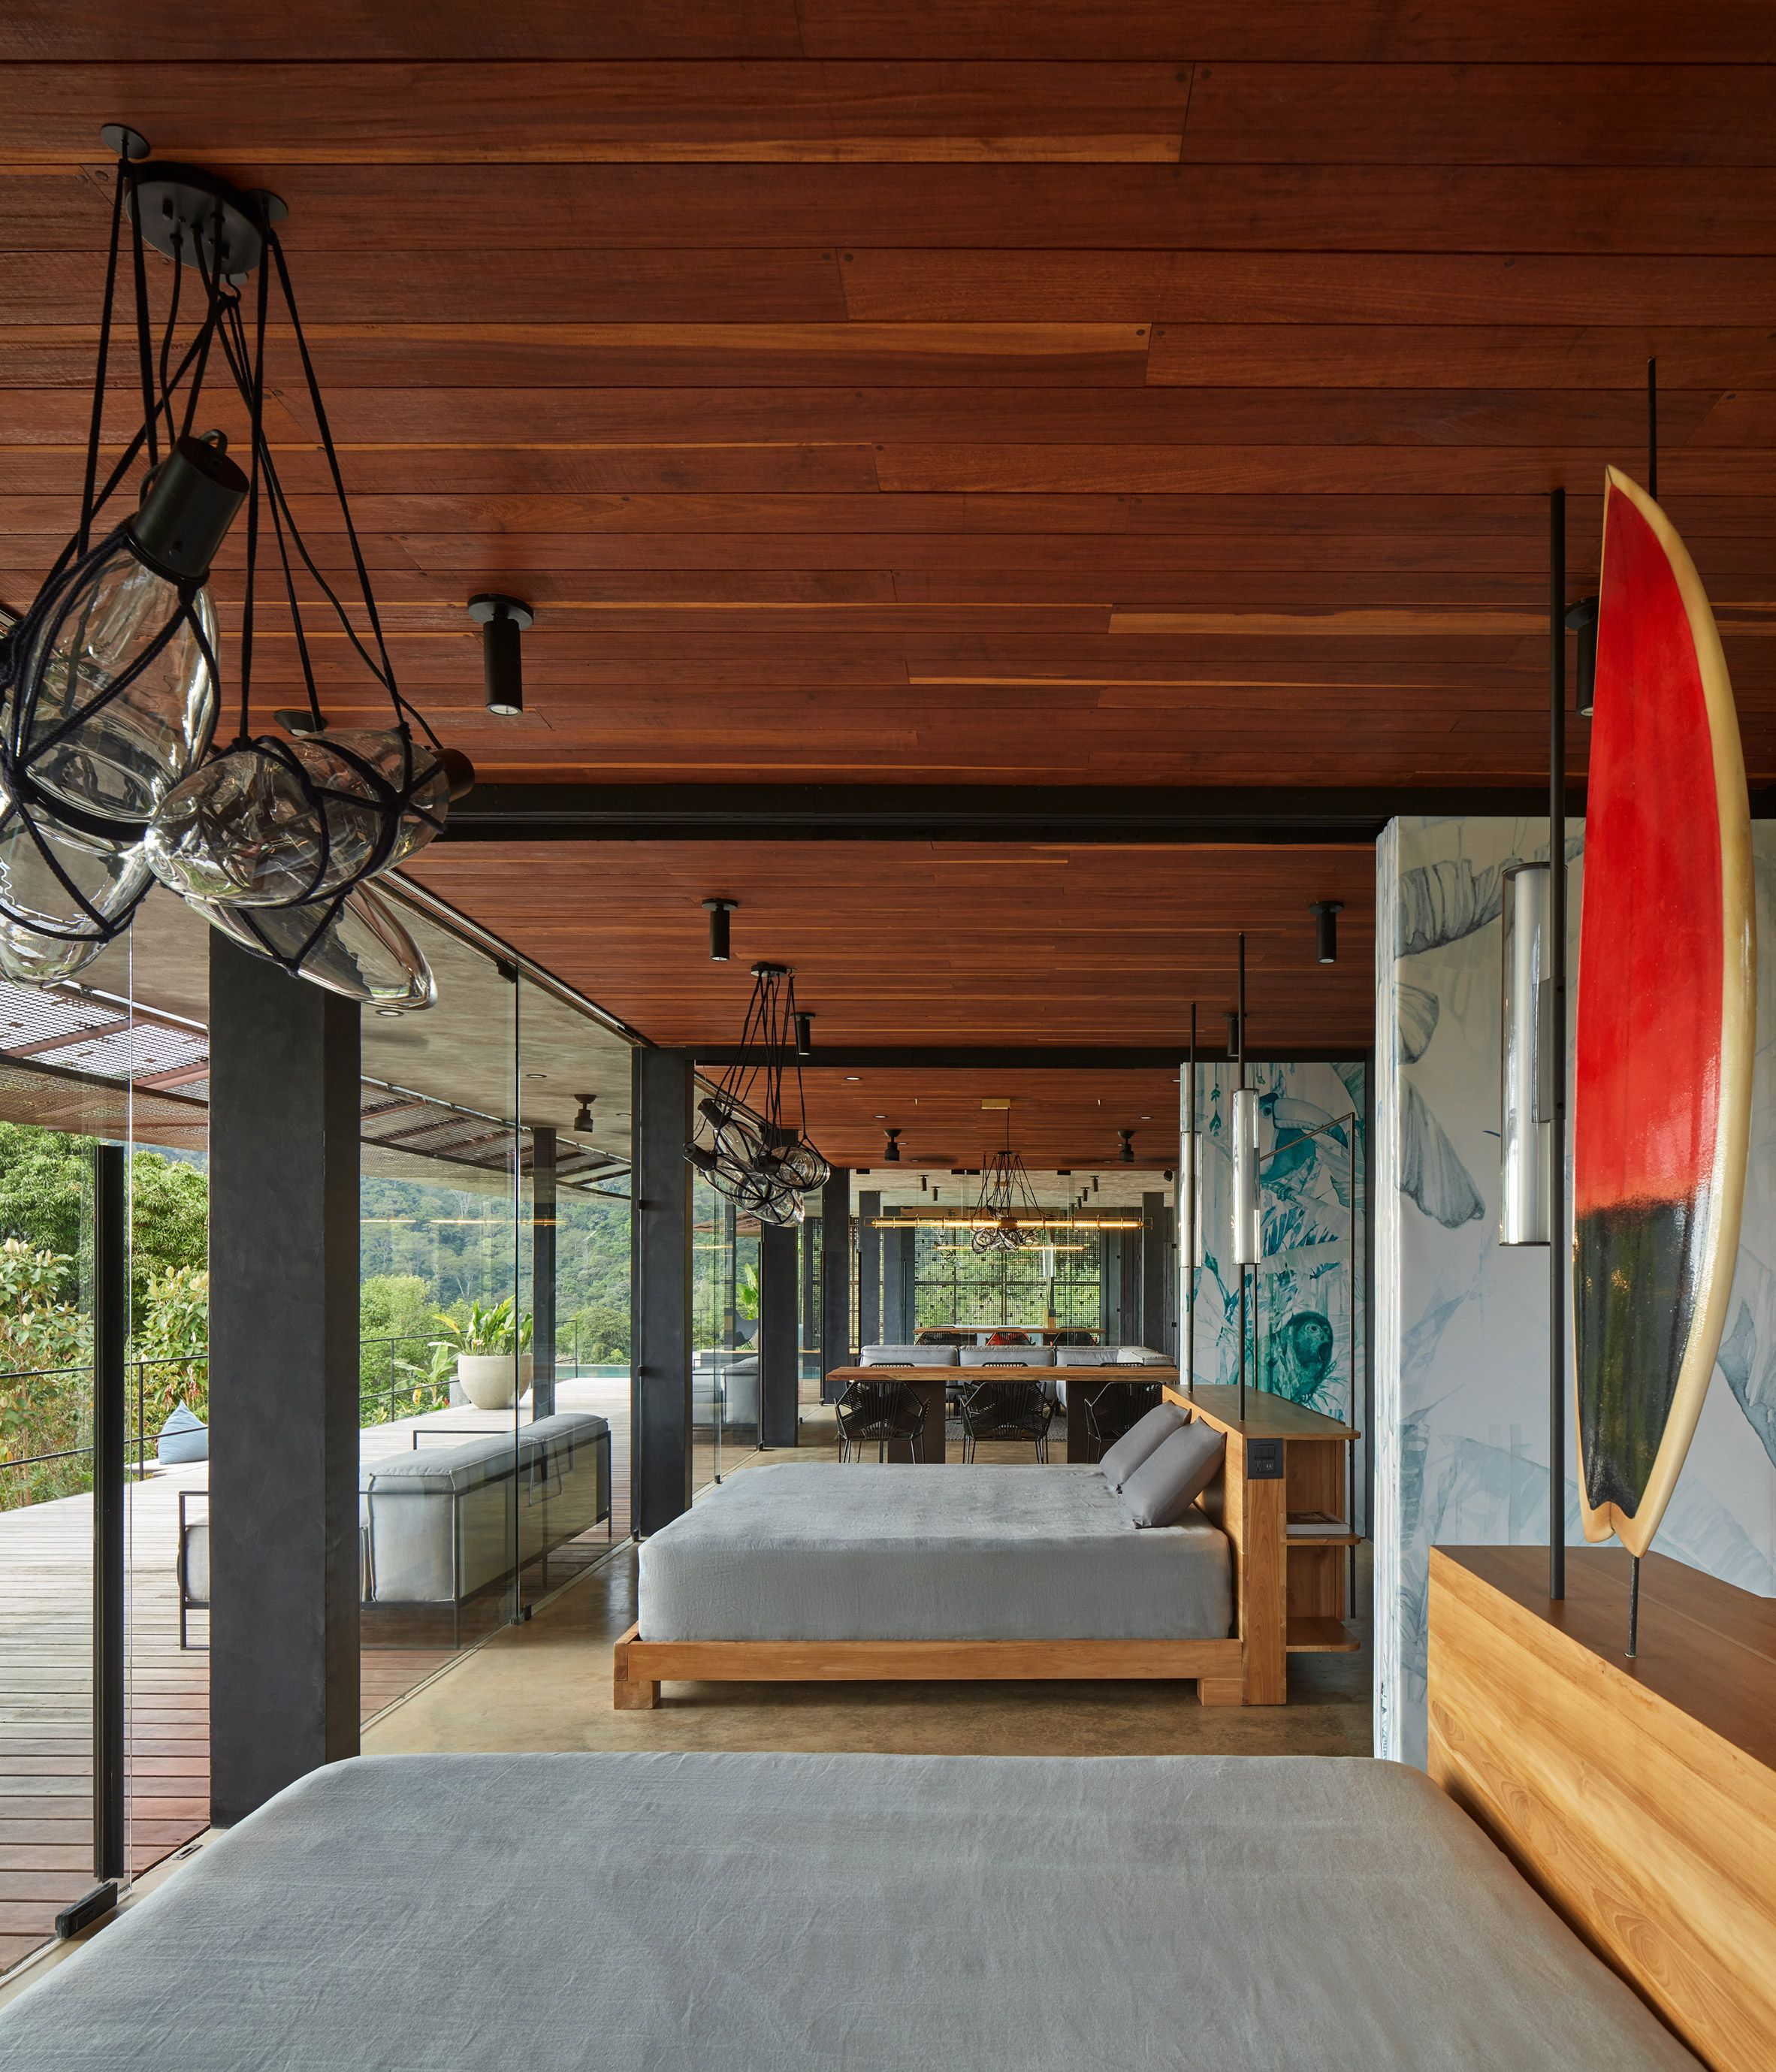 Green Roof And Charred Wood Blend Atelier Villa Into Costa Rican Jungle In 2020 Green Roof Charred Wood Exterior Cladding